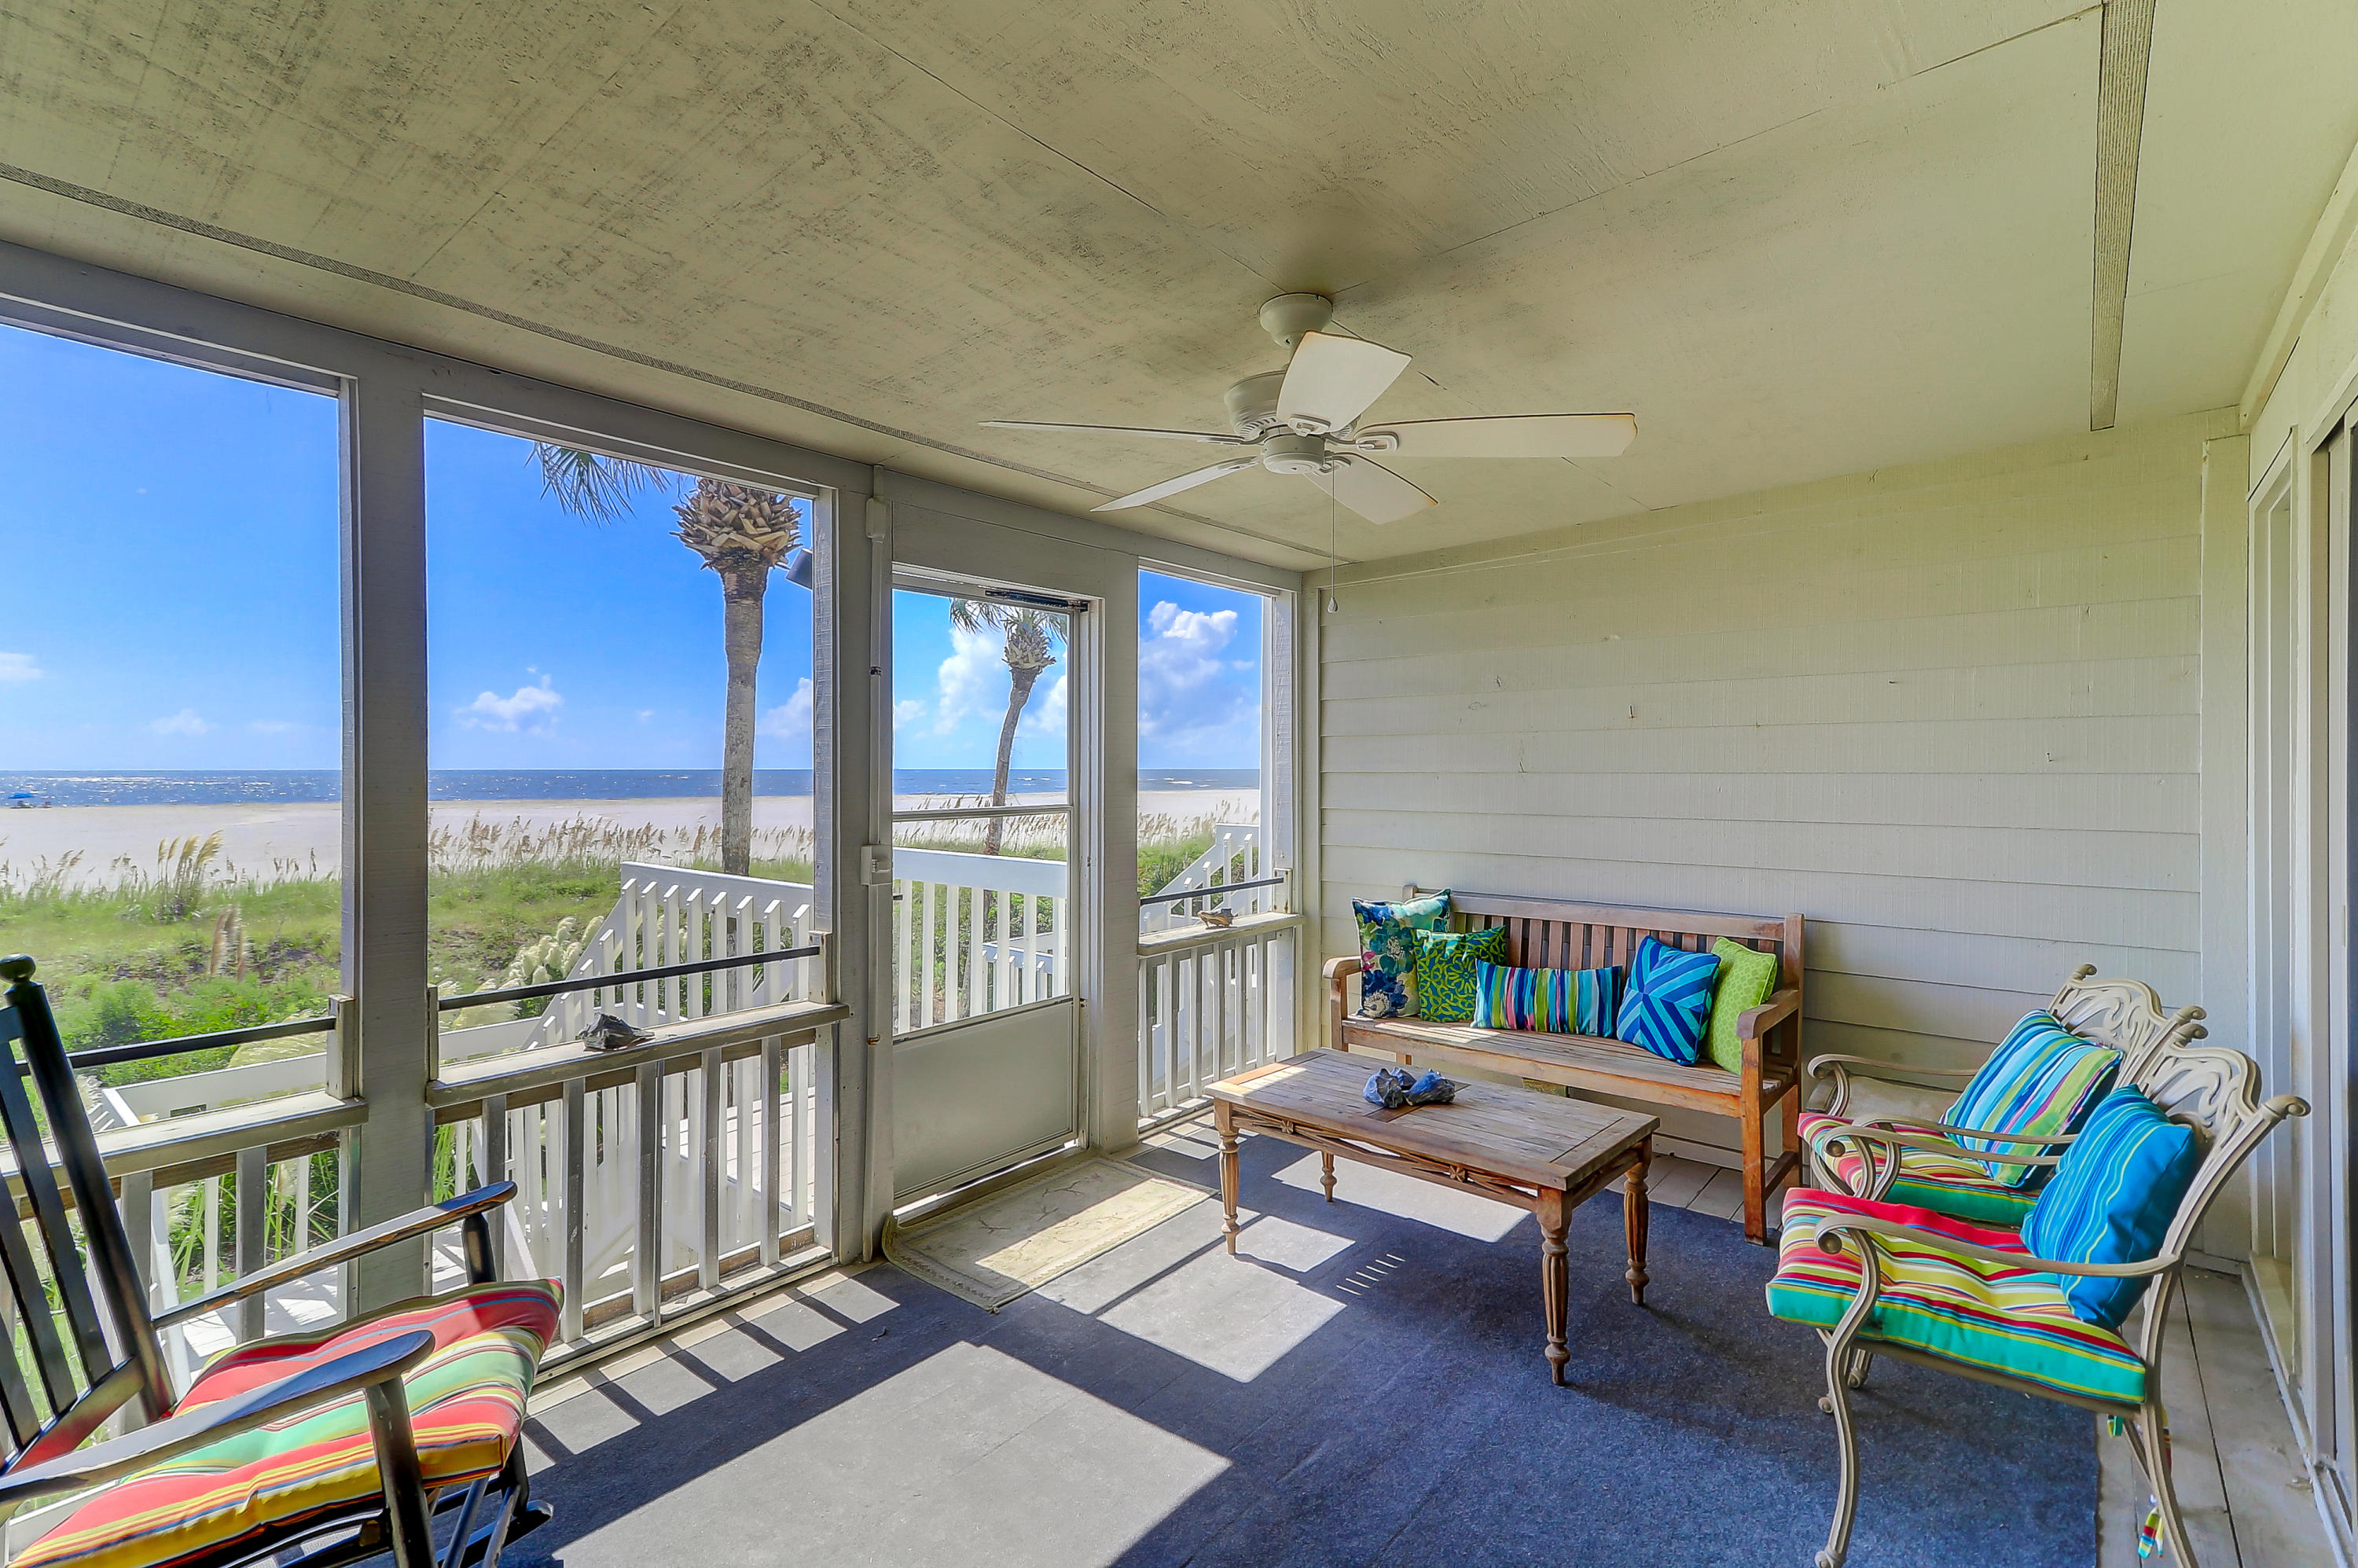 Beach Club Villas Homes For Sale - 33 Beach Club Villas, Isle of Palms, SC - 43